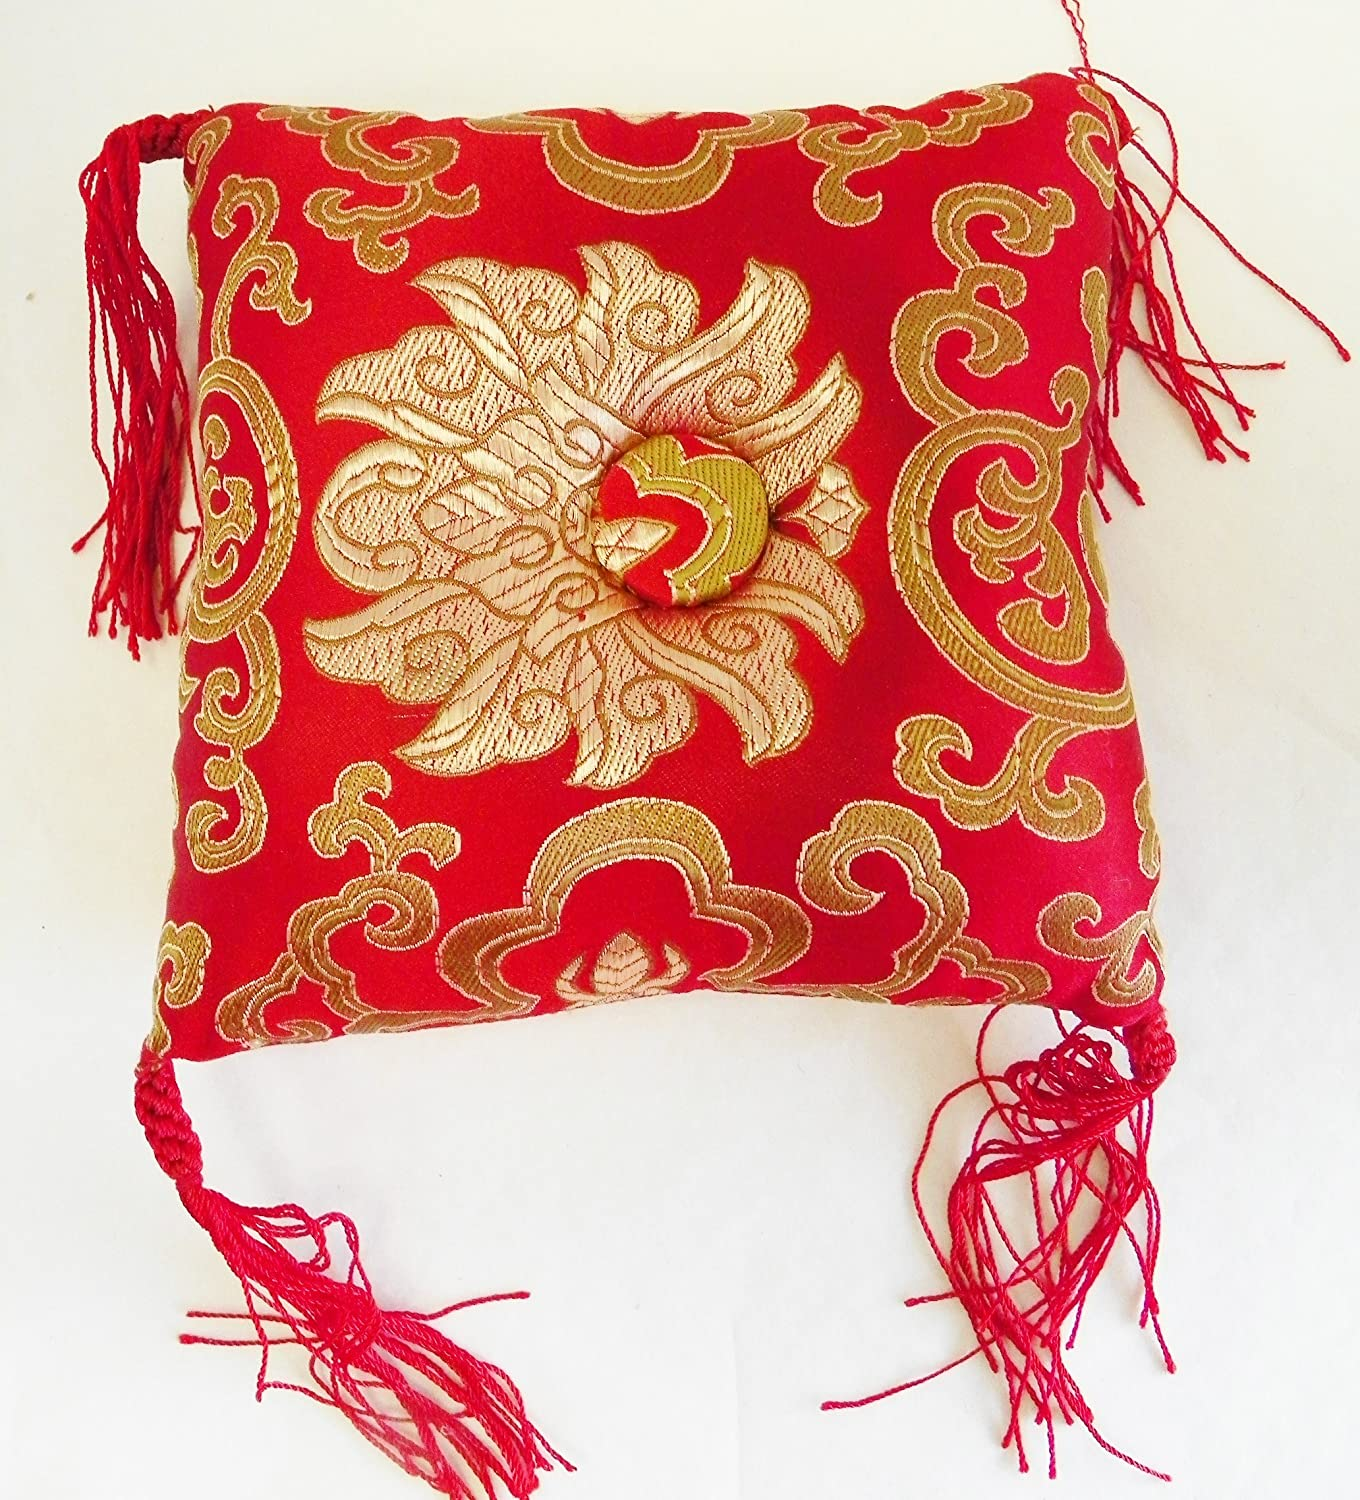 F1041/F783 Huge Silk Brocade Cushion Pillow for Tibetan Singing Bowl Handmade in Nepal bowlsofnepal